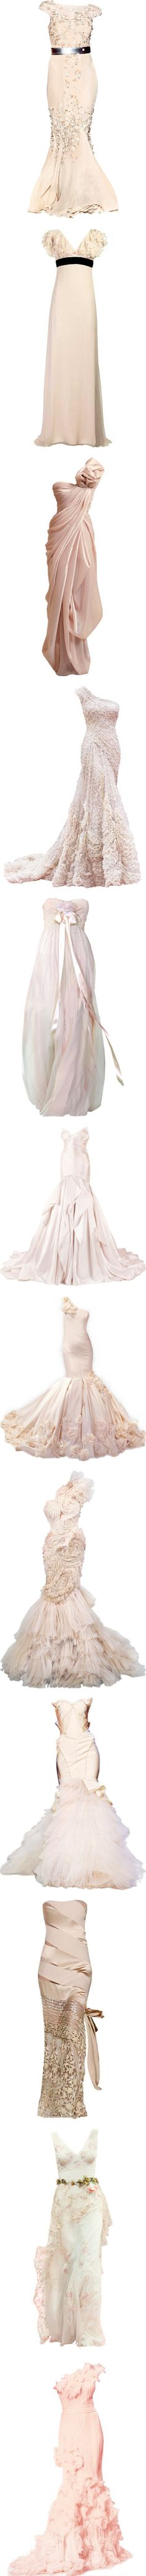 Rose Evening Dresses by linea-prima on Polyvore featuring dresses, gowns, long dress, satinee, vestidos, badgley mischka evening dresses, badgley mischka gown, pink evening gowns, pink ball gown and long dresses